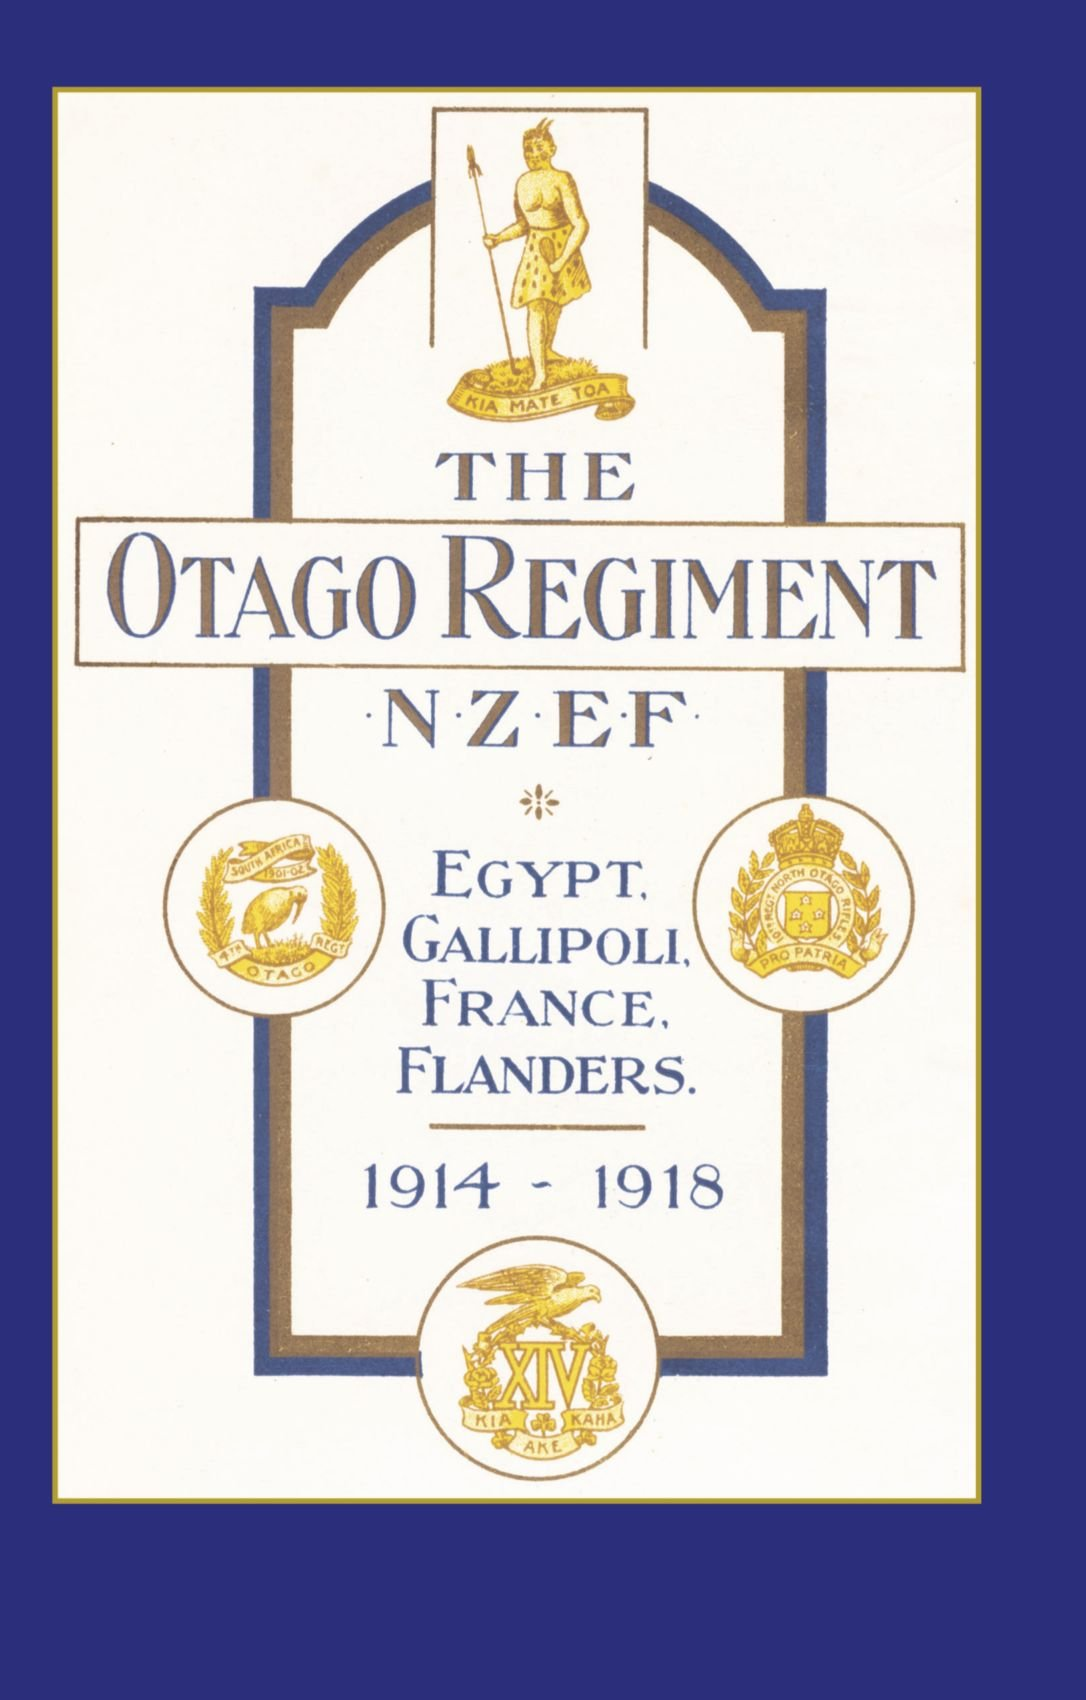 Download Official History Of The Otago Regiment In The Great War 1914-1918: Official History Of The Otago Regiment In The Great War 1914-1918 pdf epub